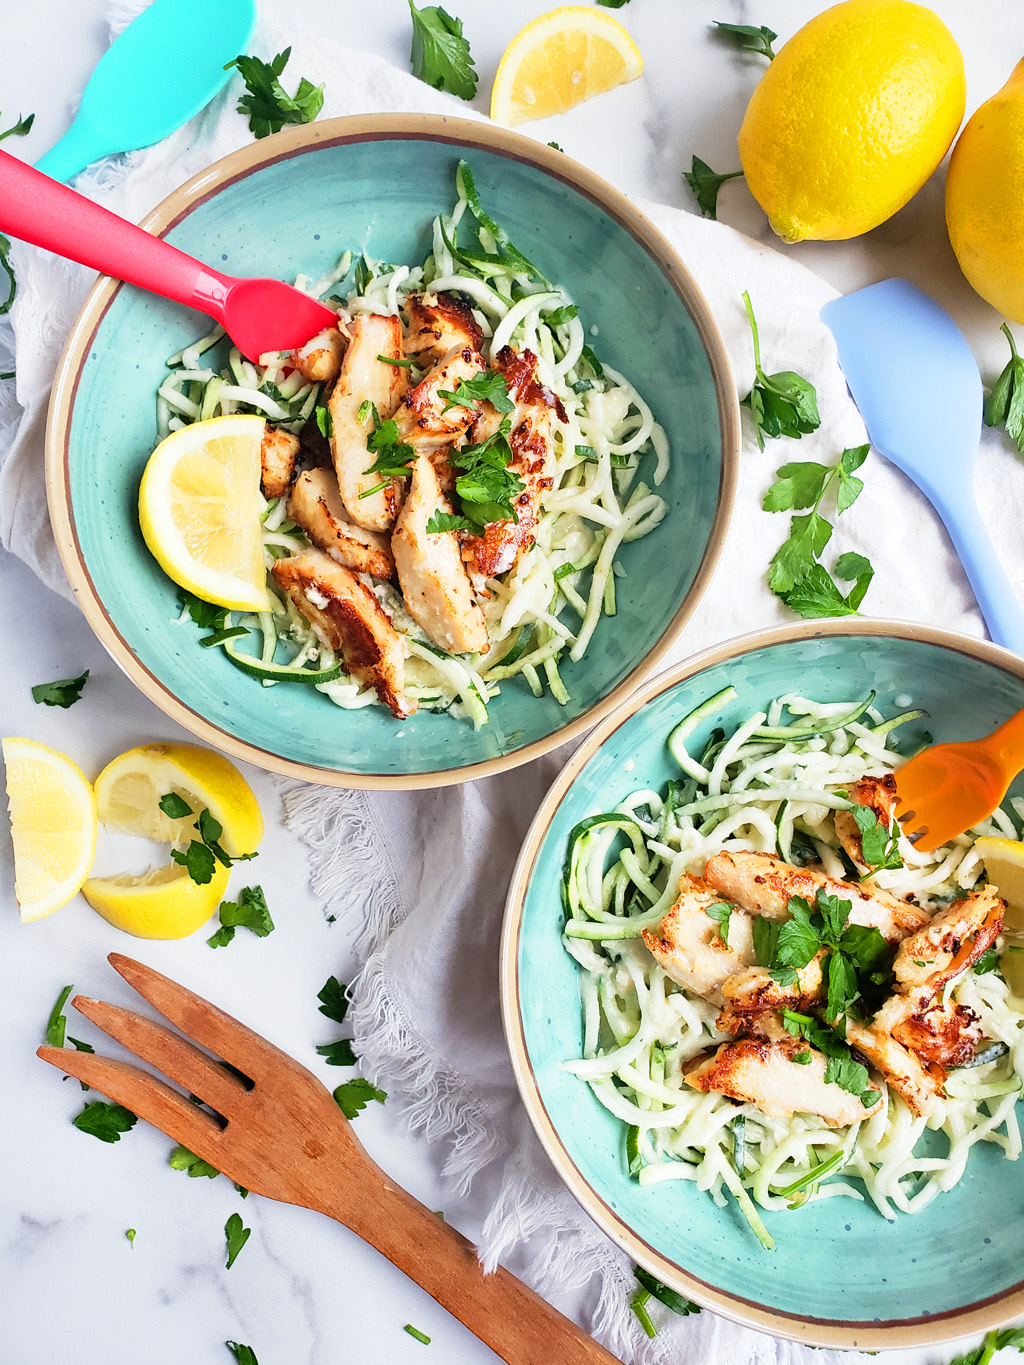 Creamy Lemony Chicken & Zoodles in a blue bowl with zucchini noodles, parsley and lemon slices. Perfect for kids.